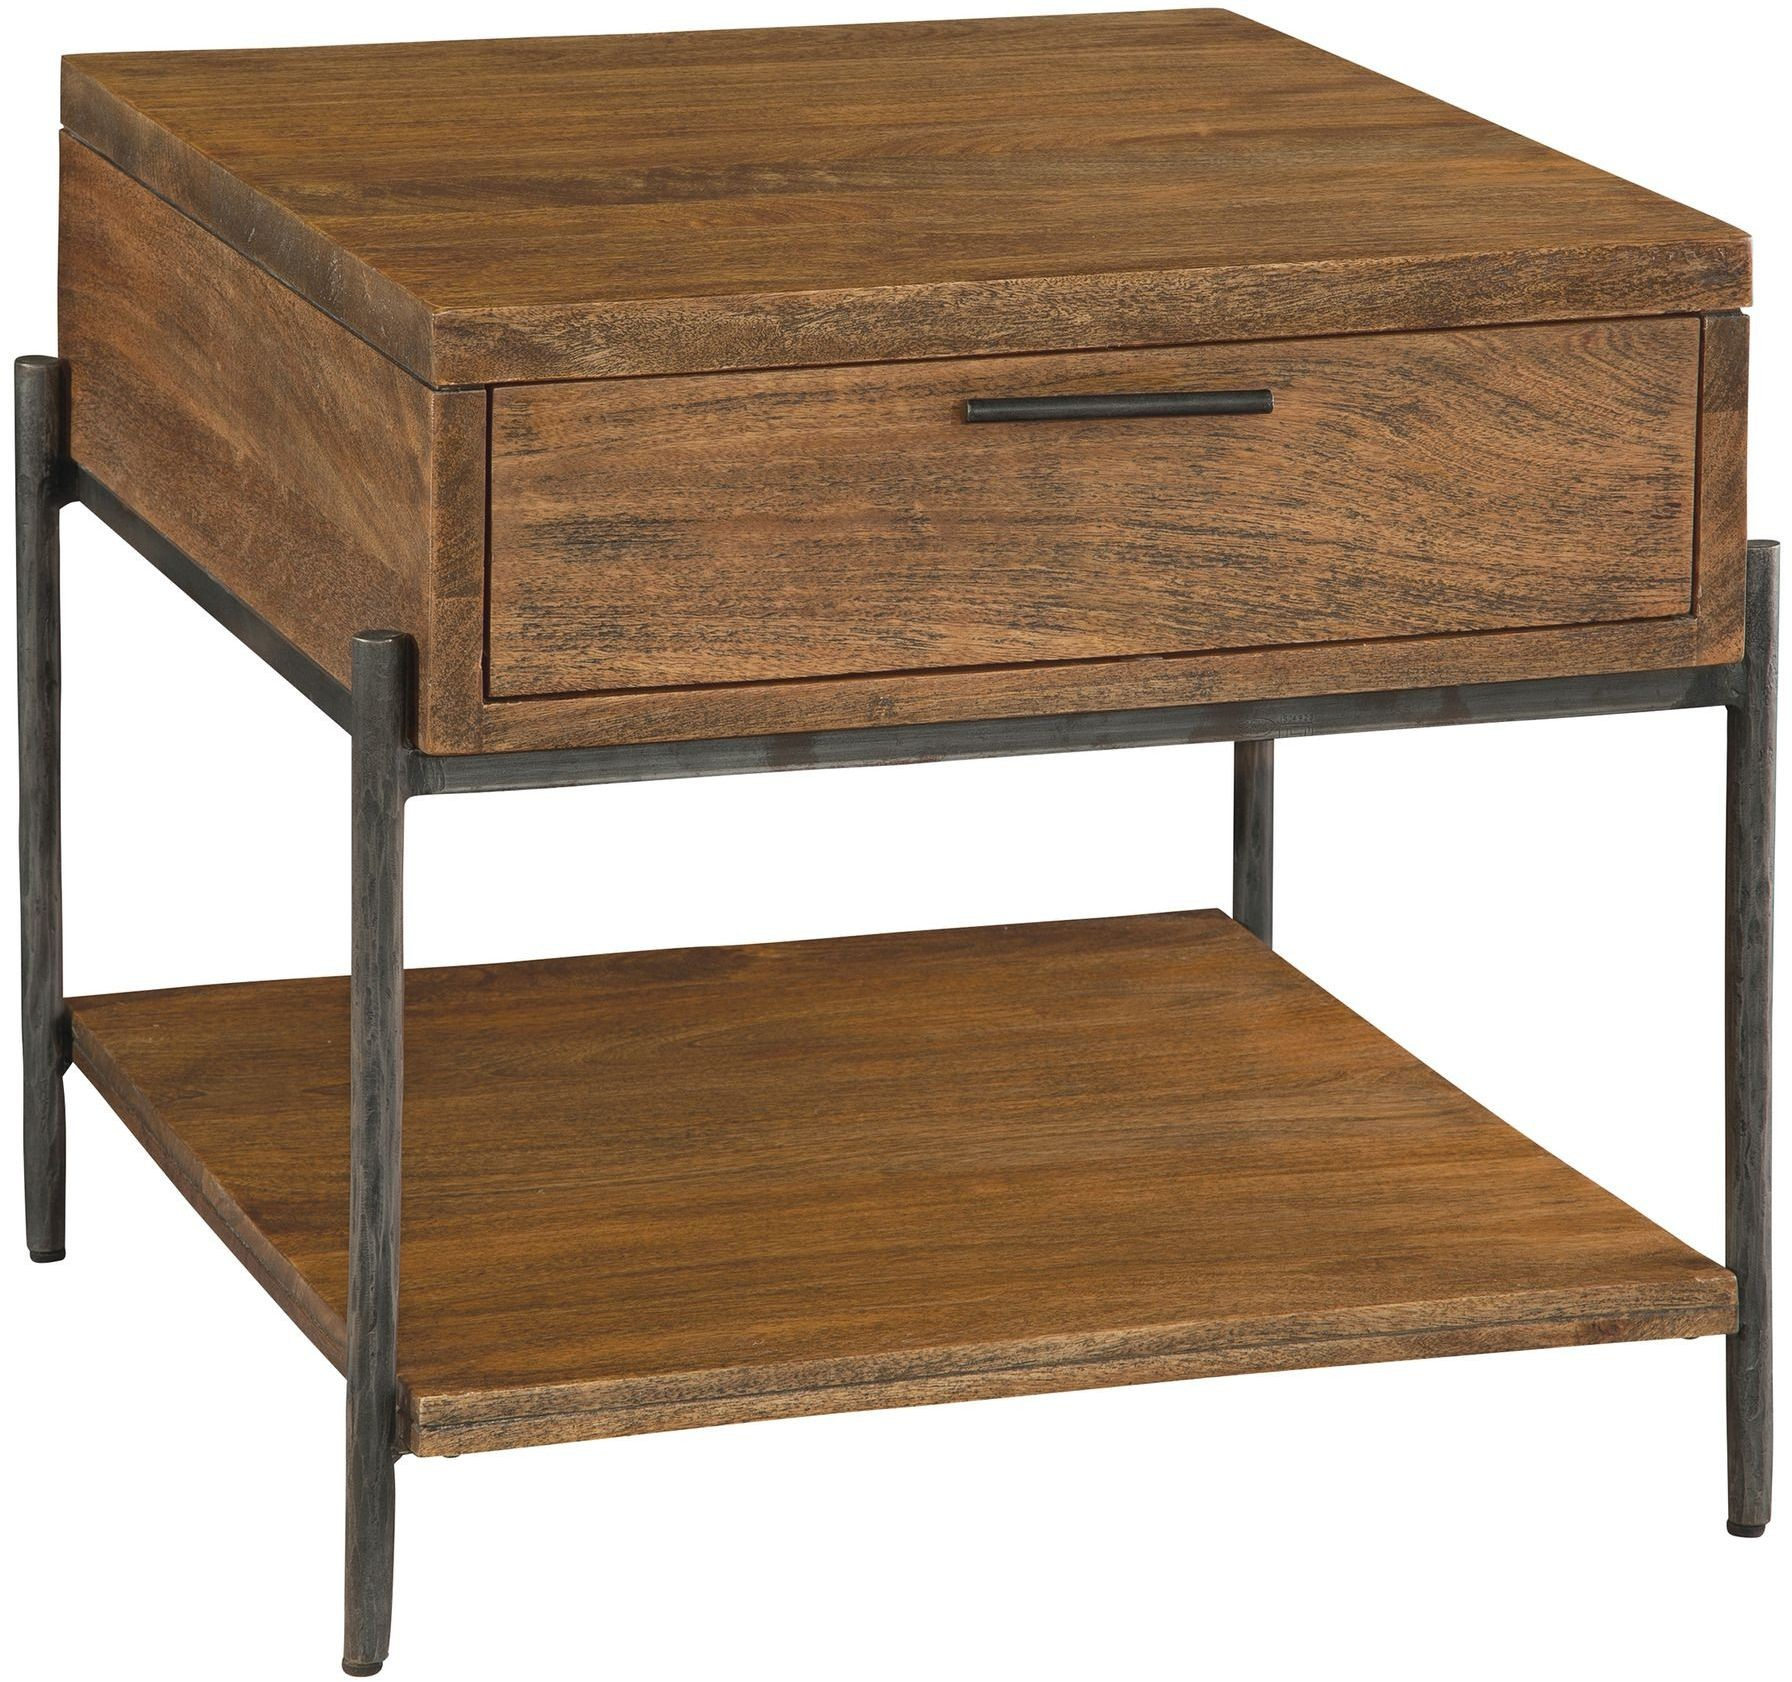 Bedford Park Brown And Gray Drawer End Table From Hekman